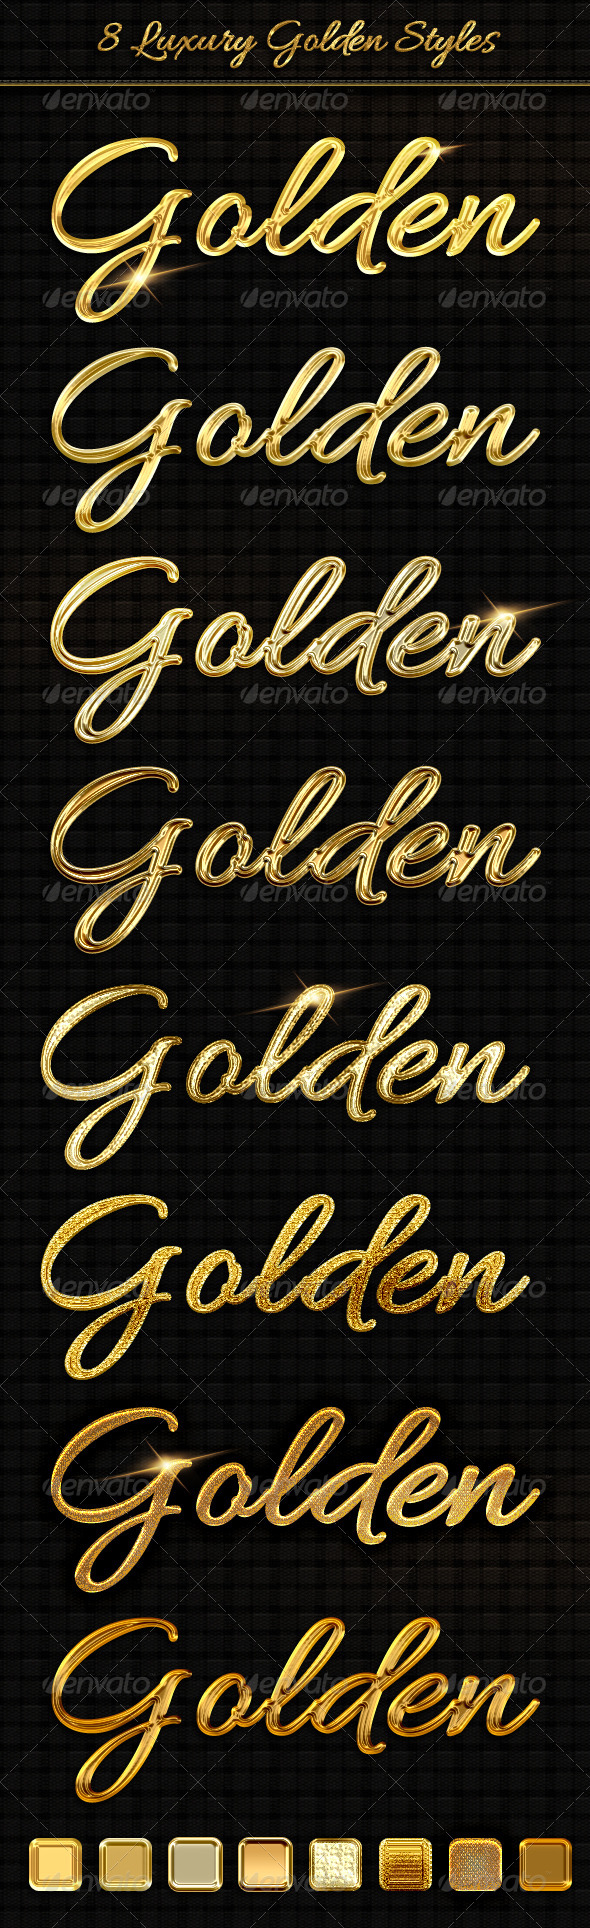 8 Luxury Golden Text Styles - Text Effects Styles